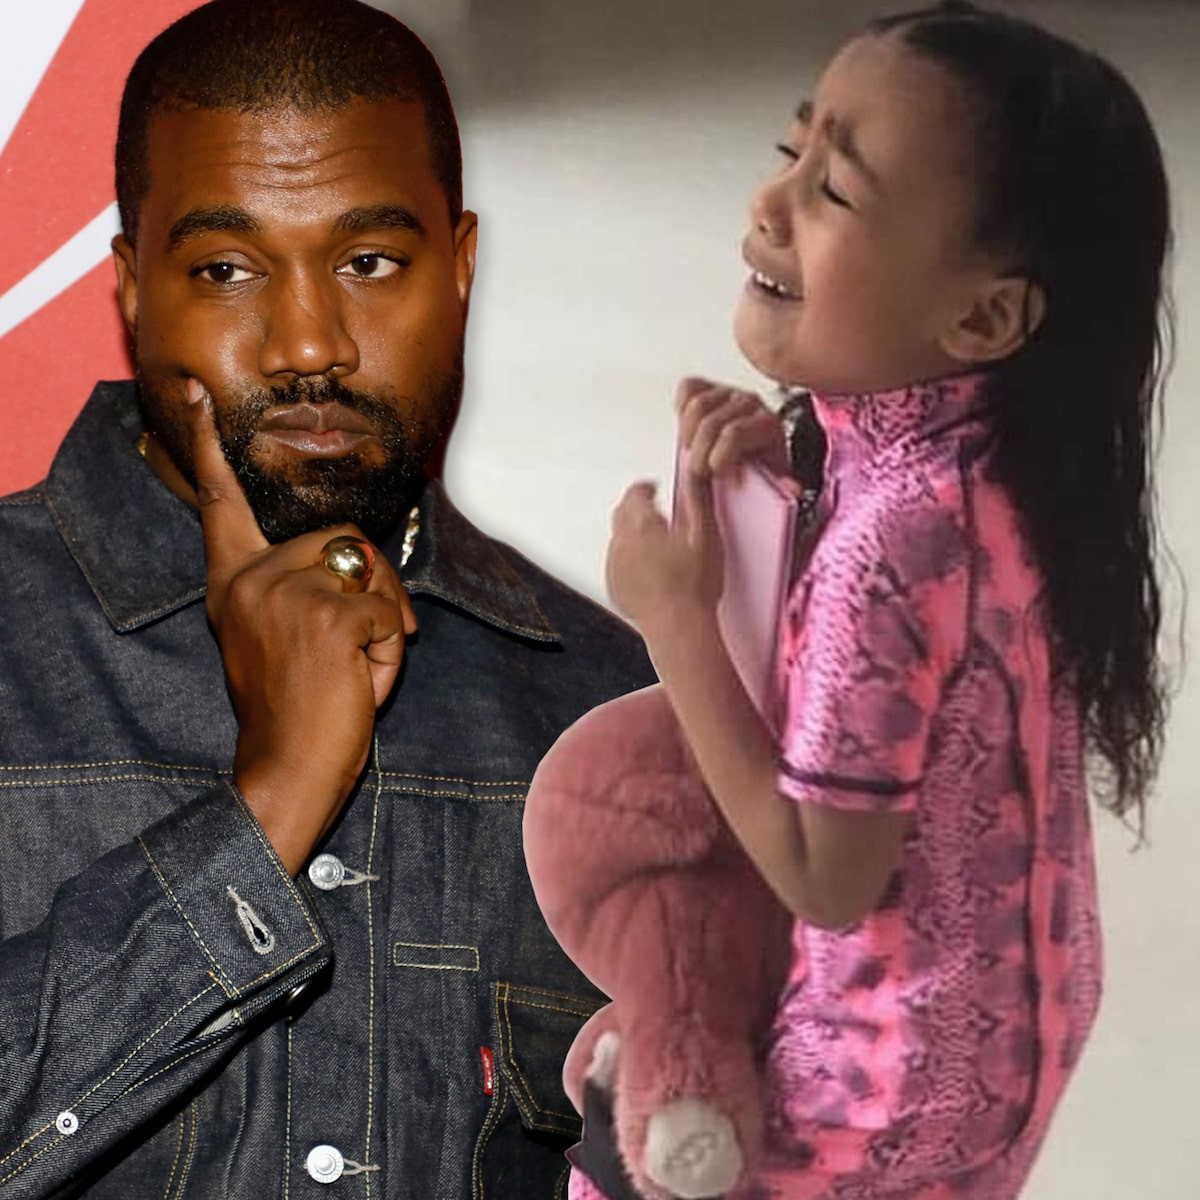 Kanye West shares disturbing tweet about getting murdered and having his eldest daughter North taken away from him, kanye west presidential campaign, SD news blog, world news latest, global news update, shugasdiary.com.ng